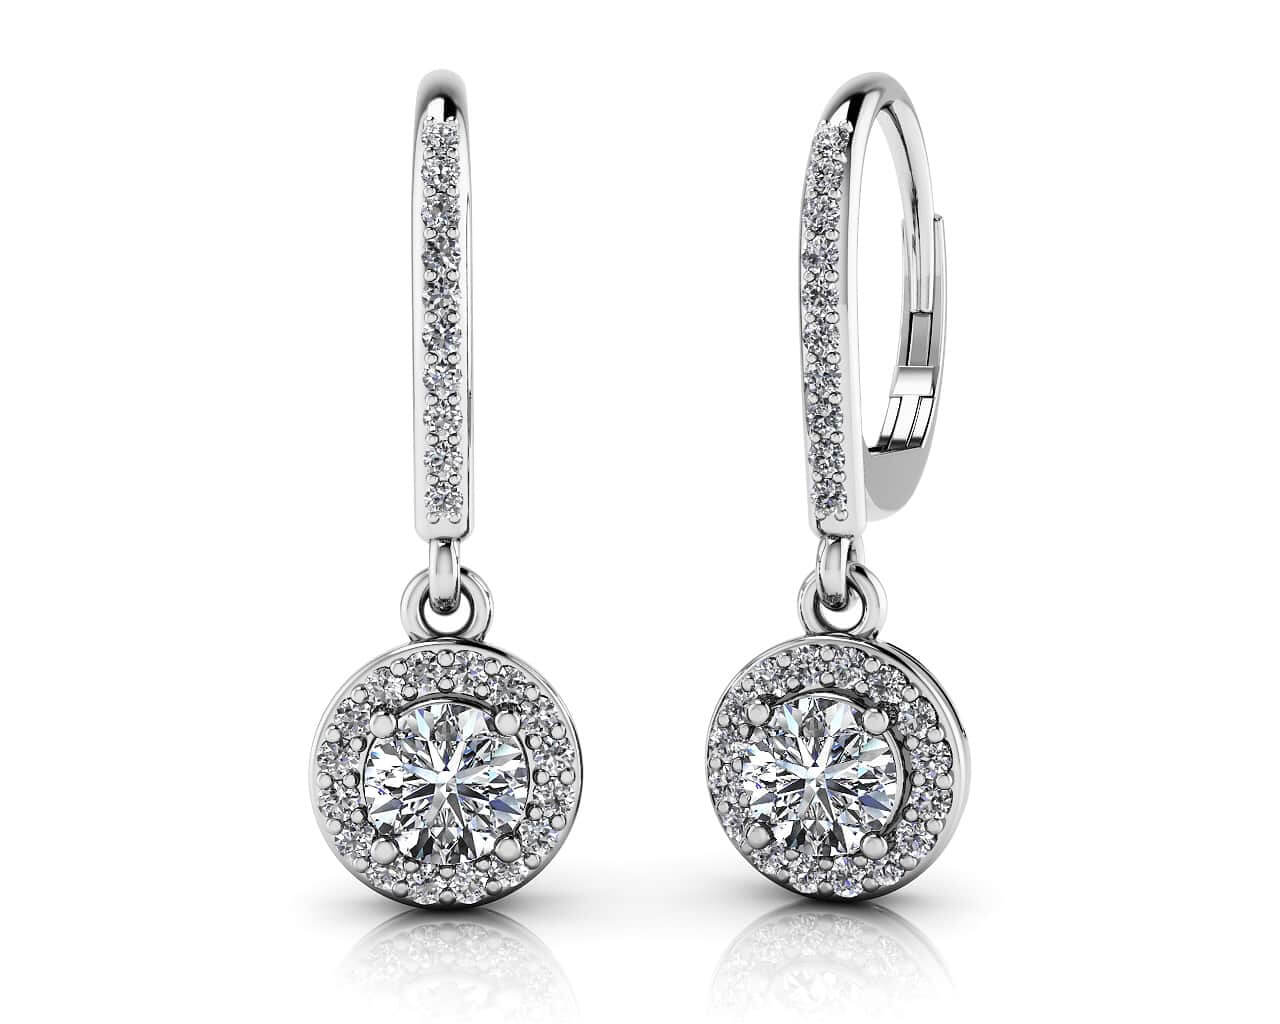 Hanging Diamond Clustered Leverback Earrings 3/4 Carat Total Weight